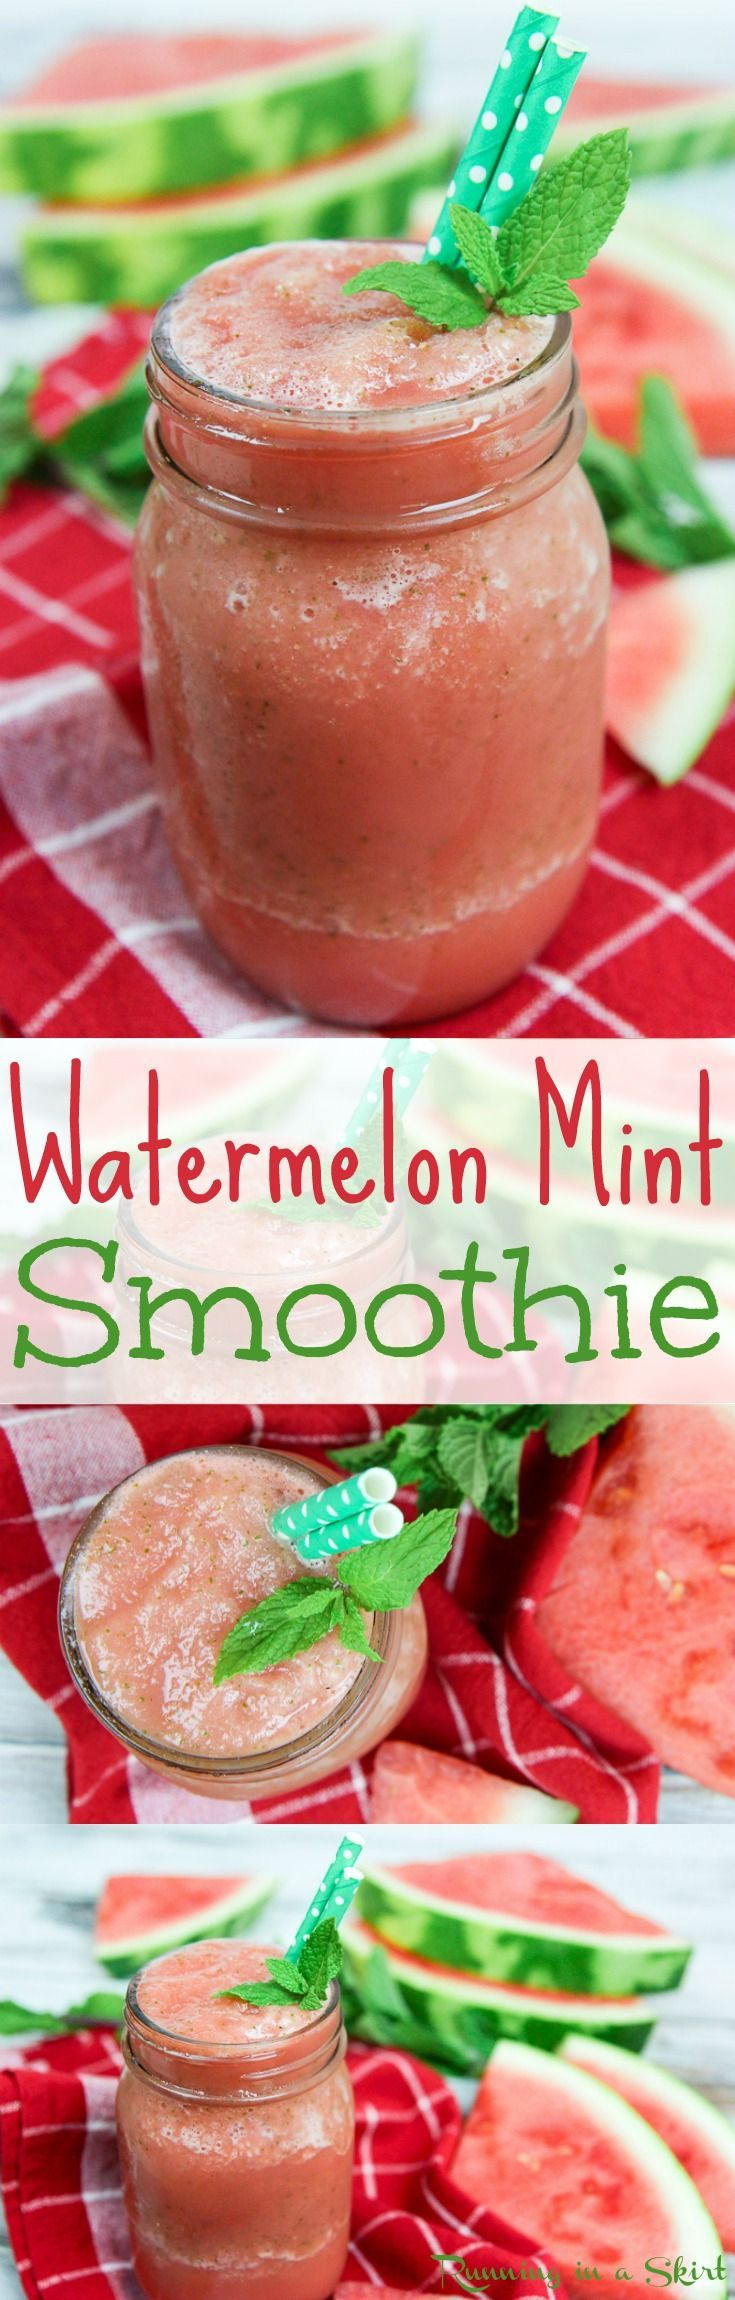 Healthy Watermelon Mint Smoothie recipe! A hydrating and refreshing idea for summer drinks. An easy, simple, vegan, gluten free, and clean eating watermelon smoothie drink. Perfect for summer mornings, snacks or after working out! / Running in a Skirt